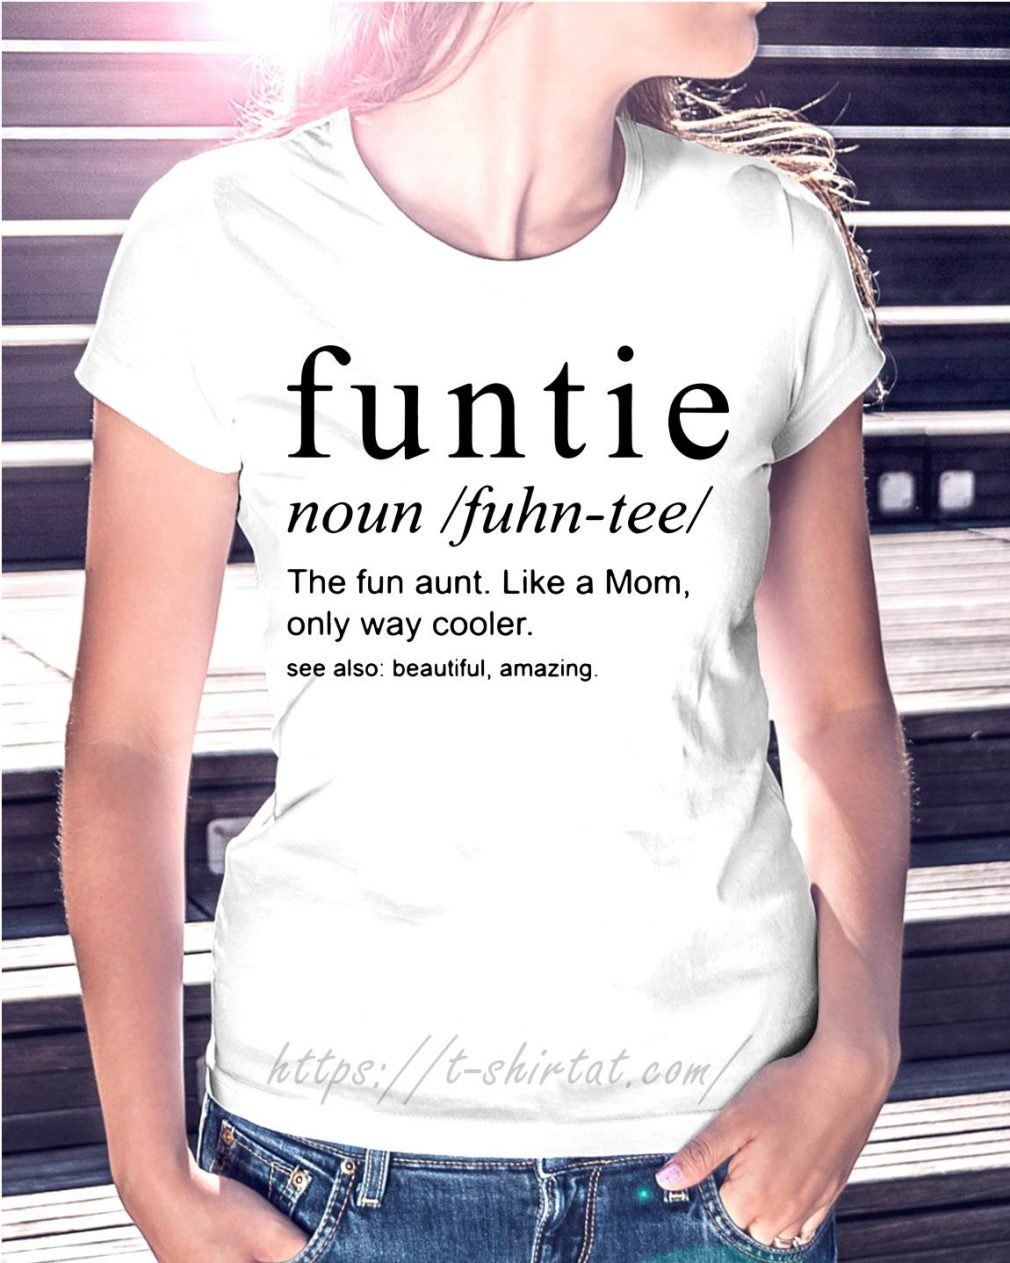 Funtie definite the fun aunt like a mom only way cooler see also beautiful amazing